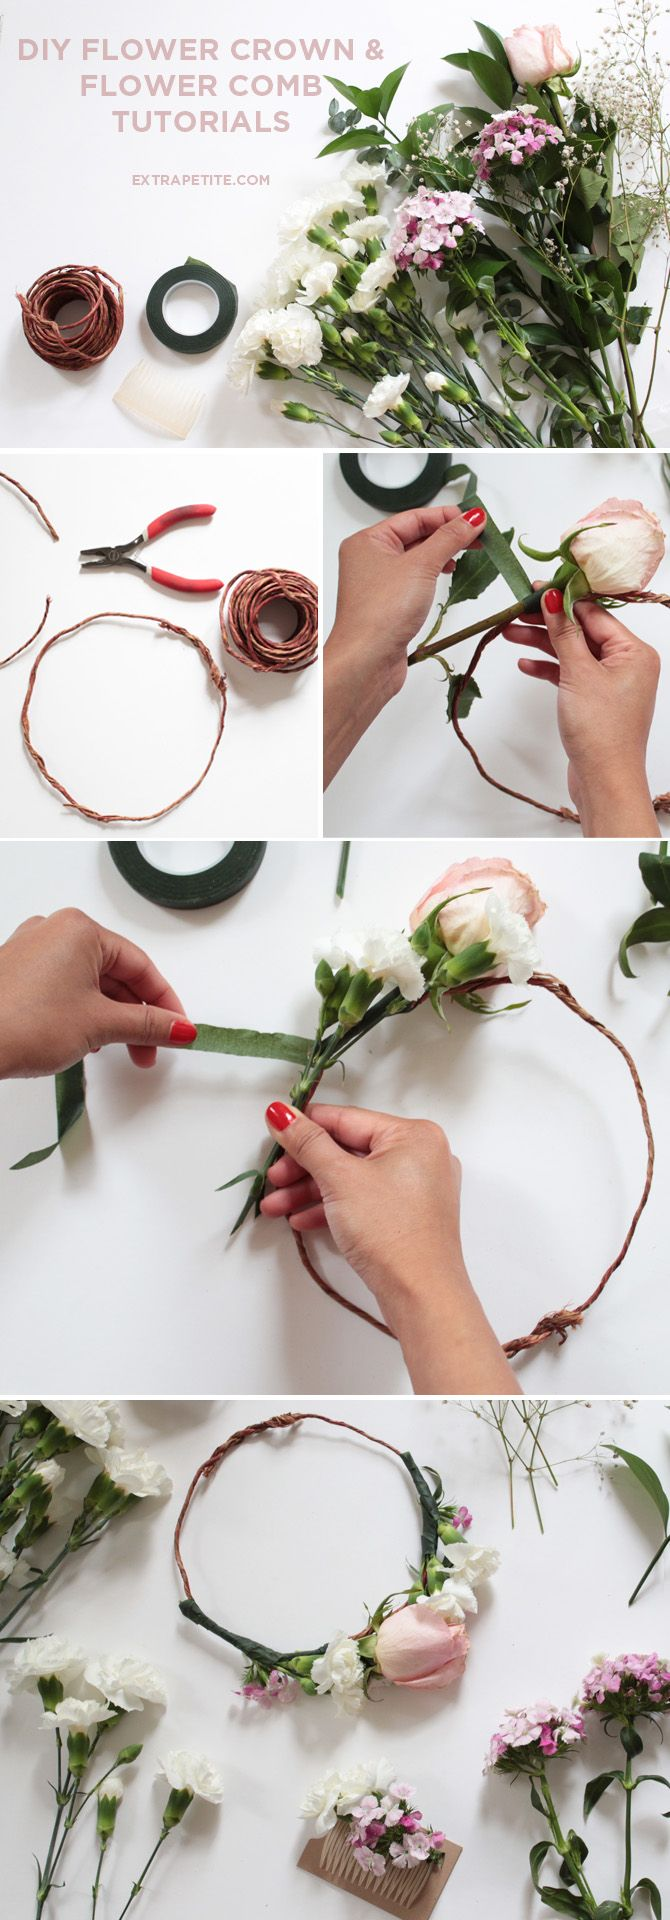 DIY flower crown and floral comb tutorials